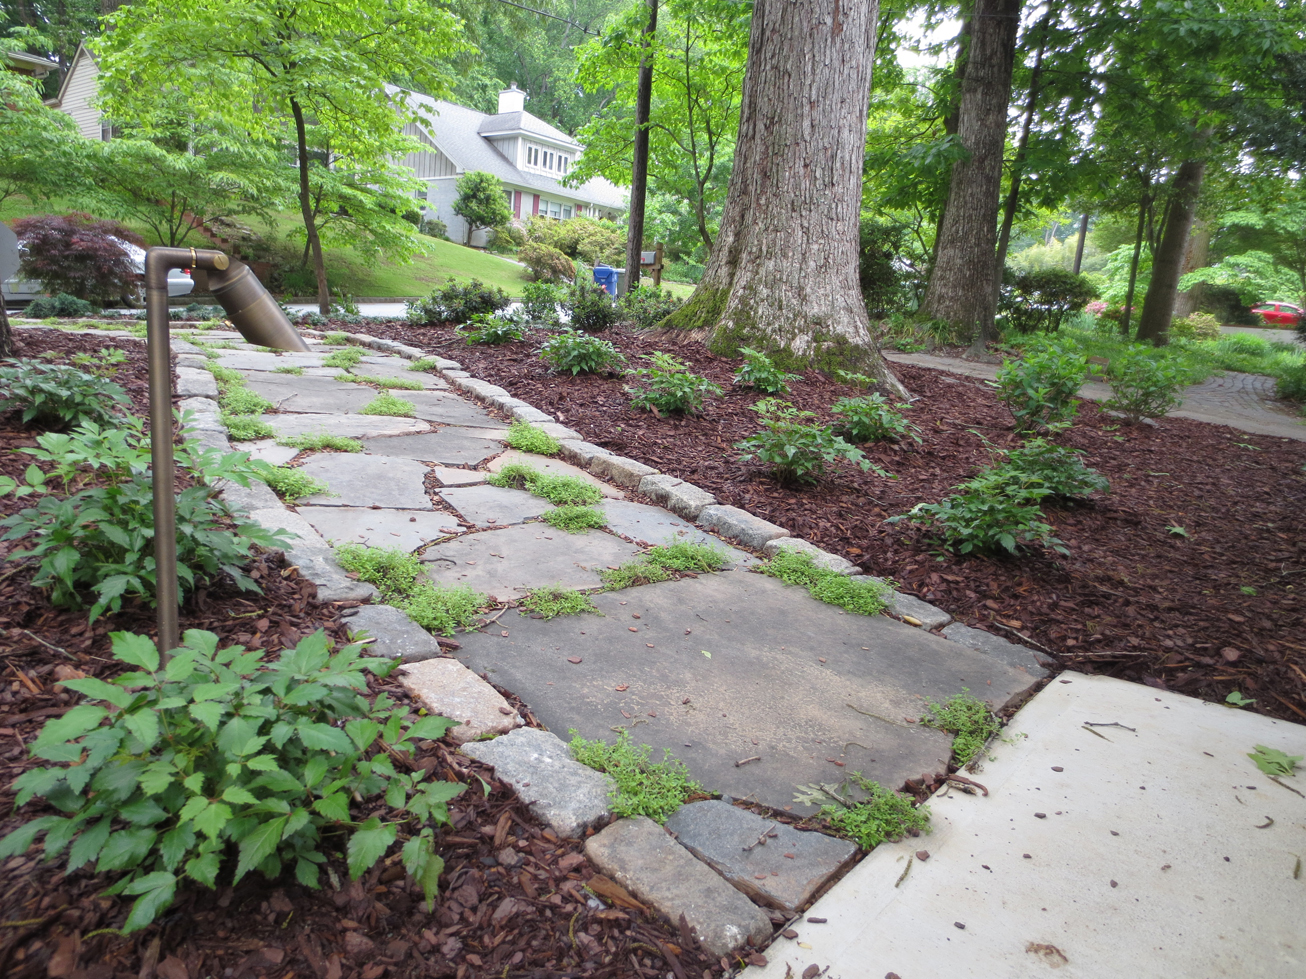 Mooney design studio landscape design atlanta ga for Garden design studio